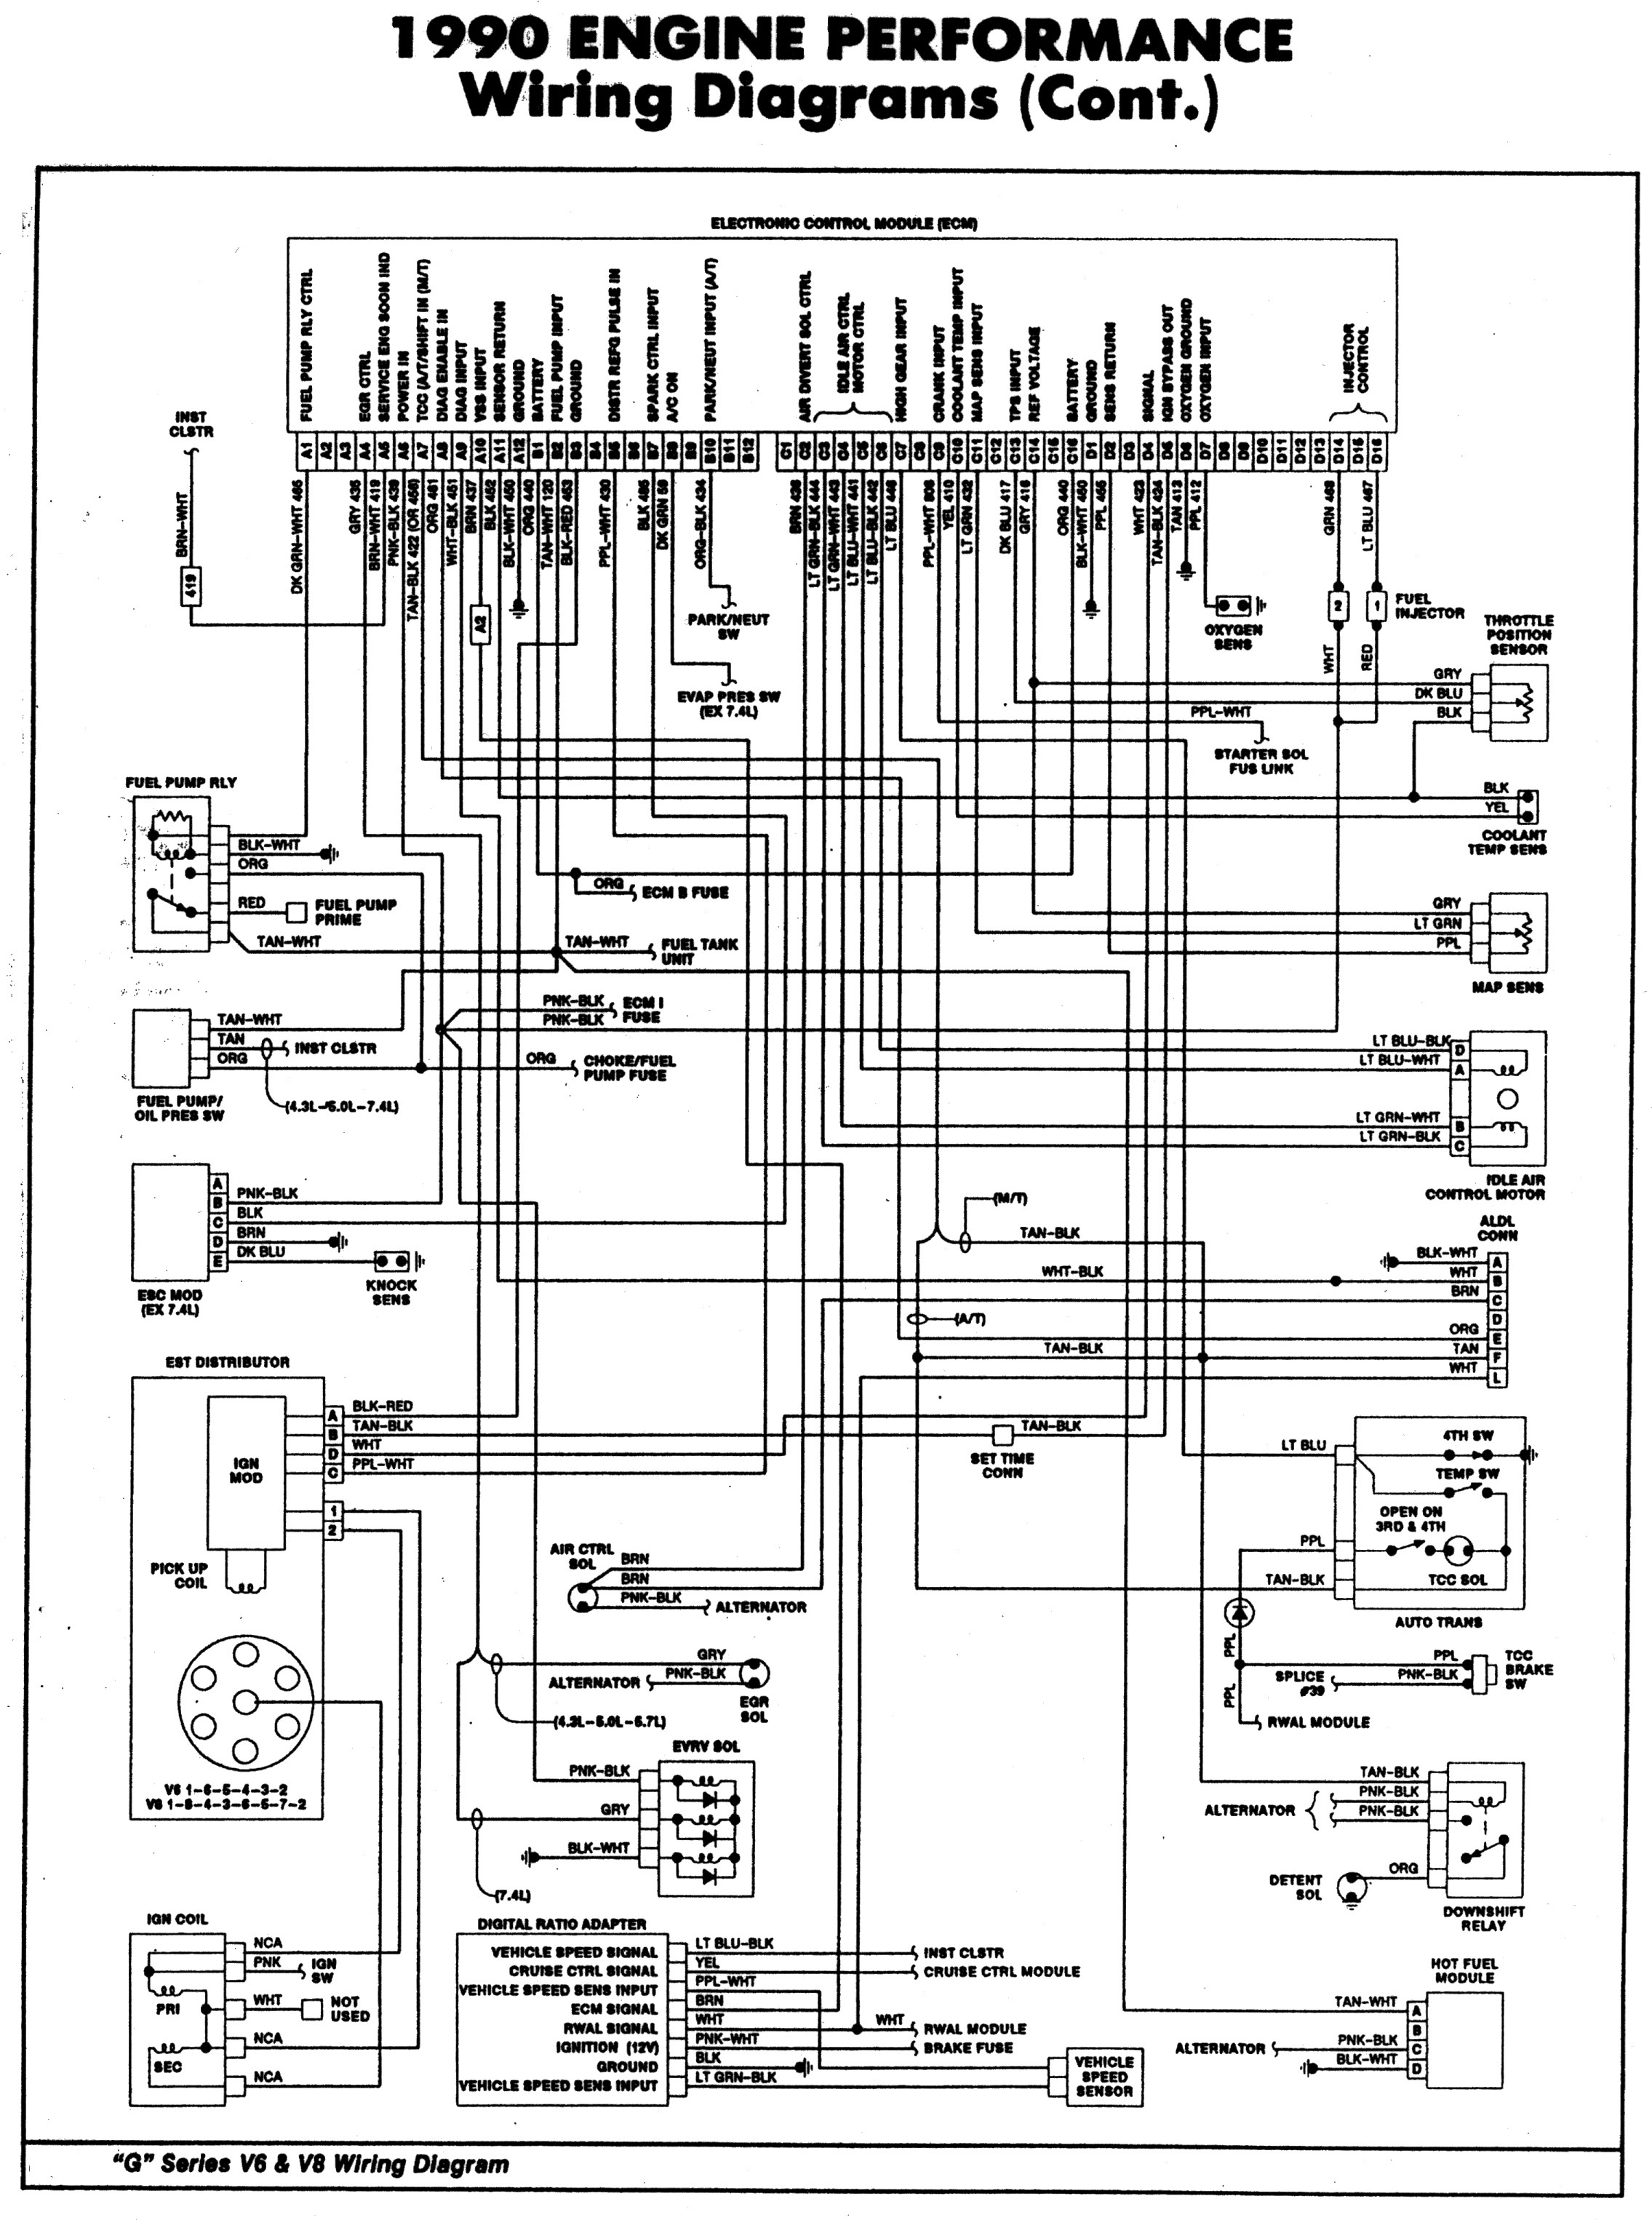 Chevy Throttle Position Sensor Wiring Diagram from i.pinimg.com